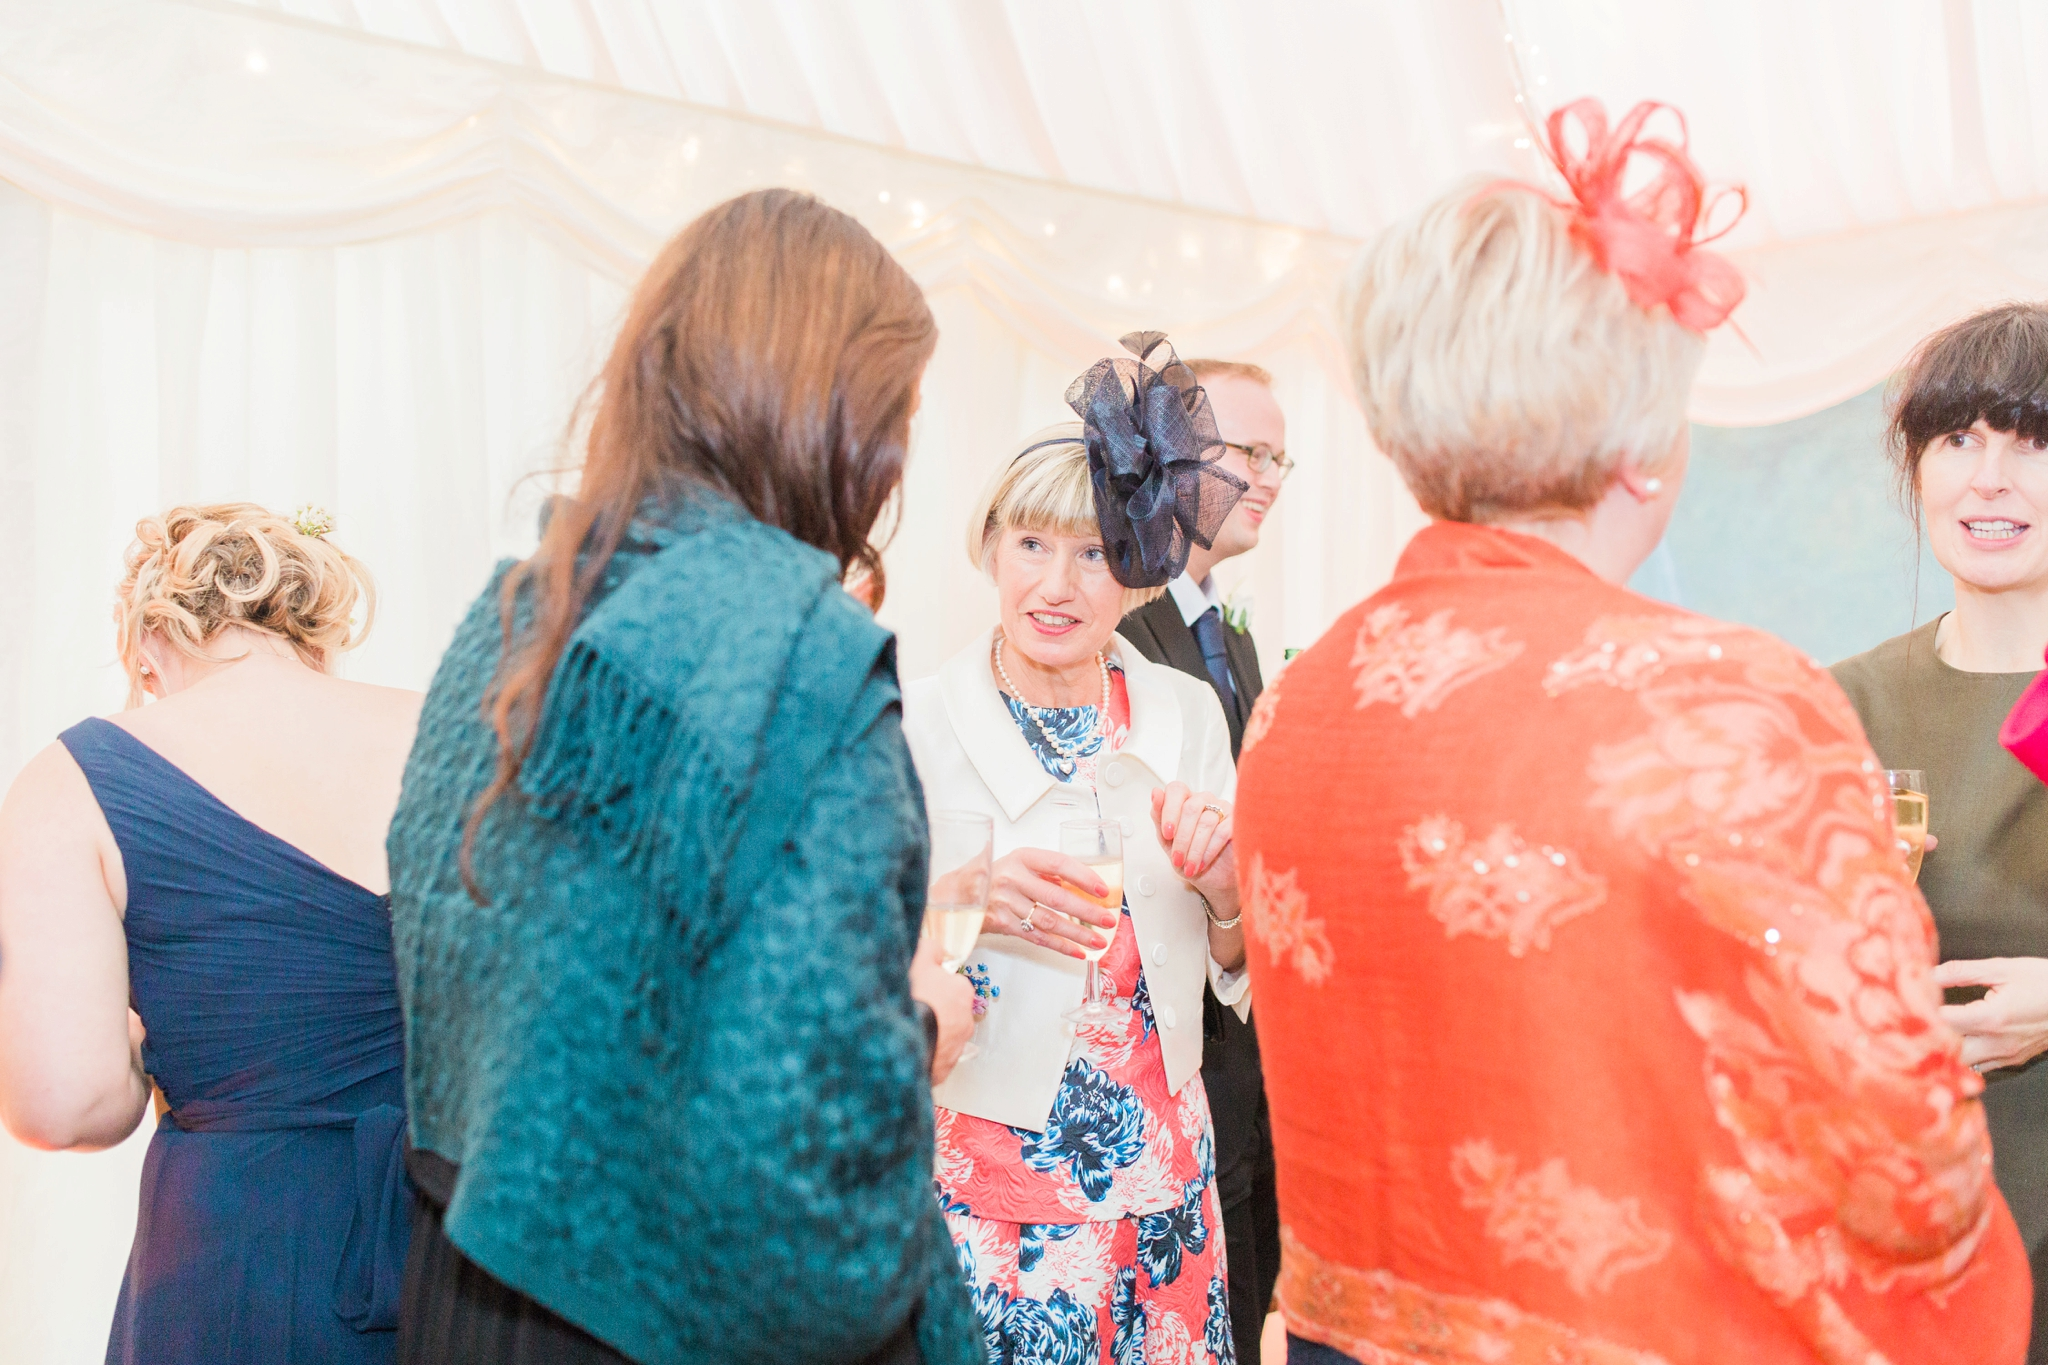 Suzanne_li_photography_kirknewton_wedding_0053.jpg